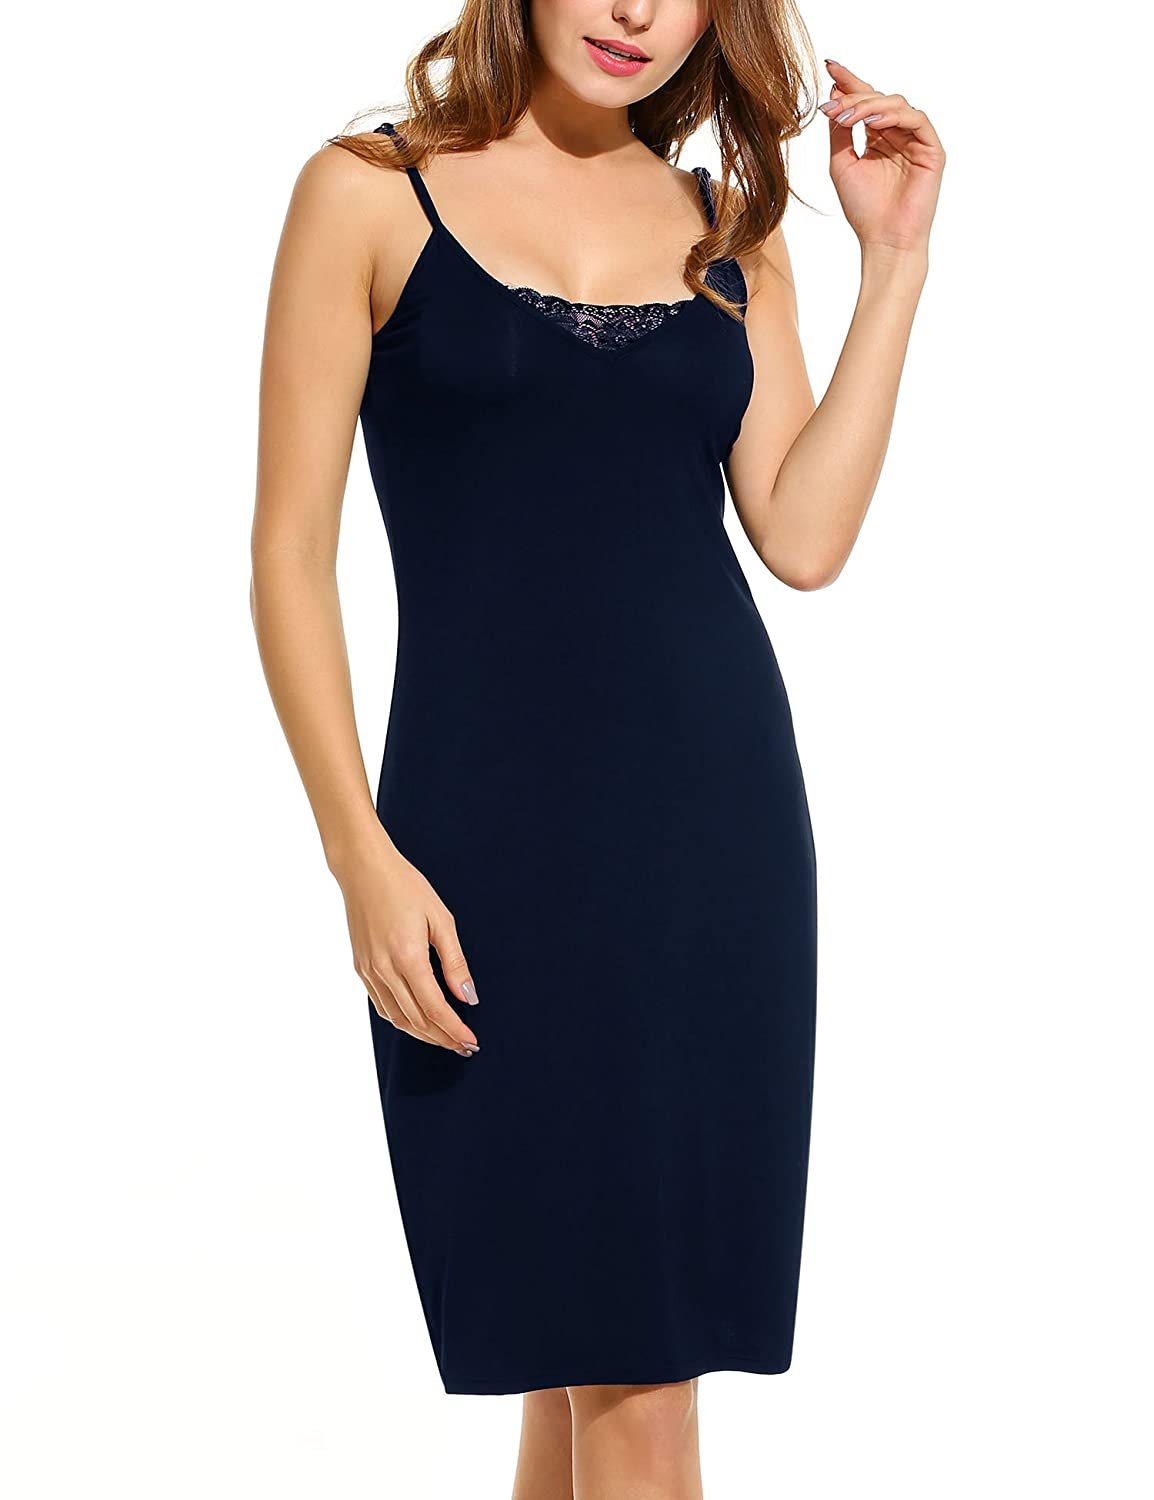 HOTOUCH Women'S Cotton Blend Spaghetti Straps Full Slips Mid-Thigh Bodycon Dress AMK005245_NB_XXL